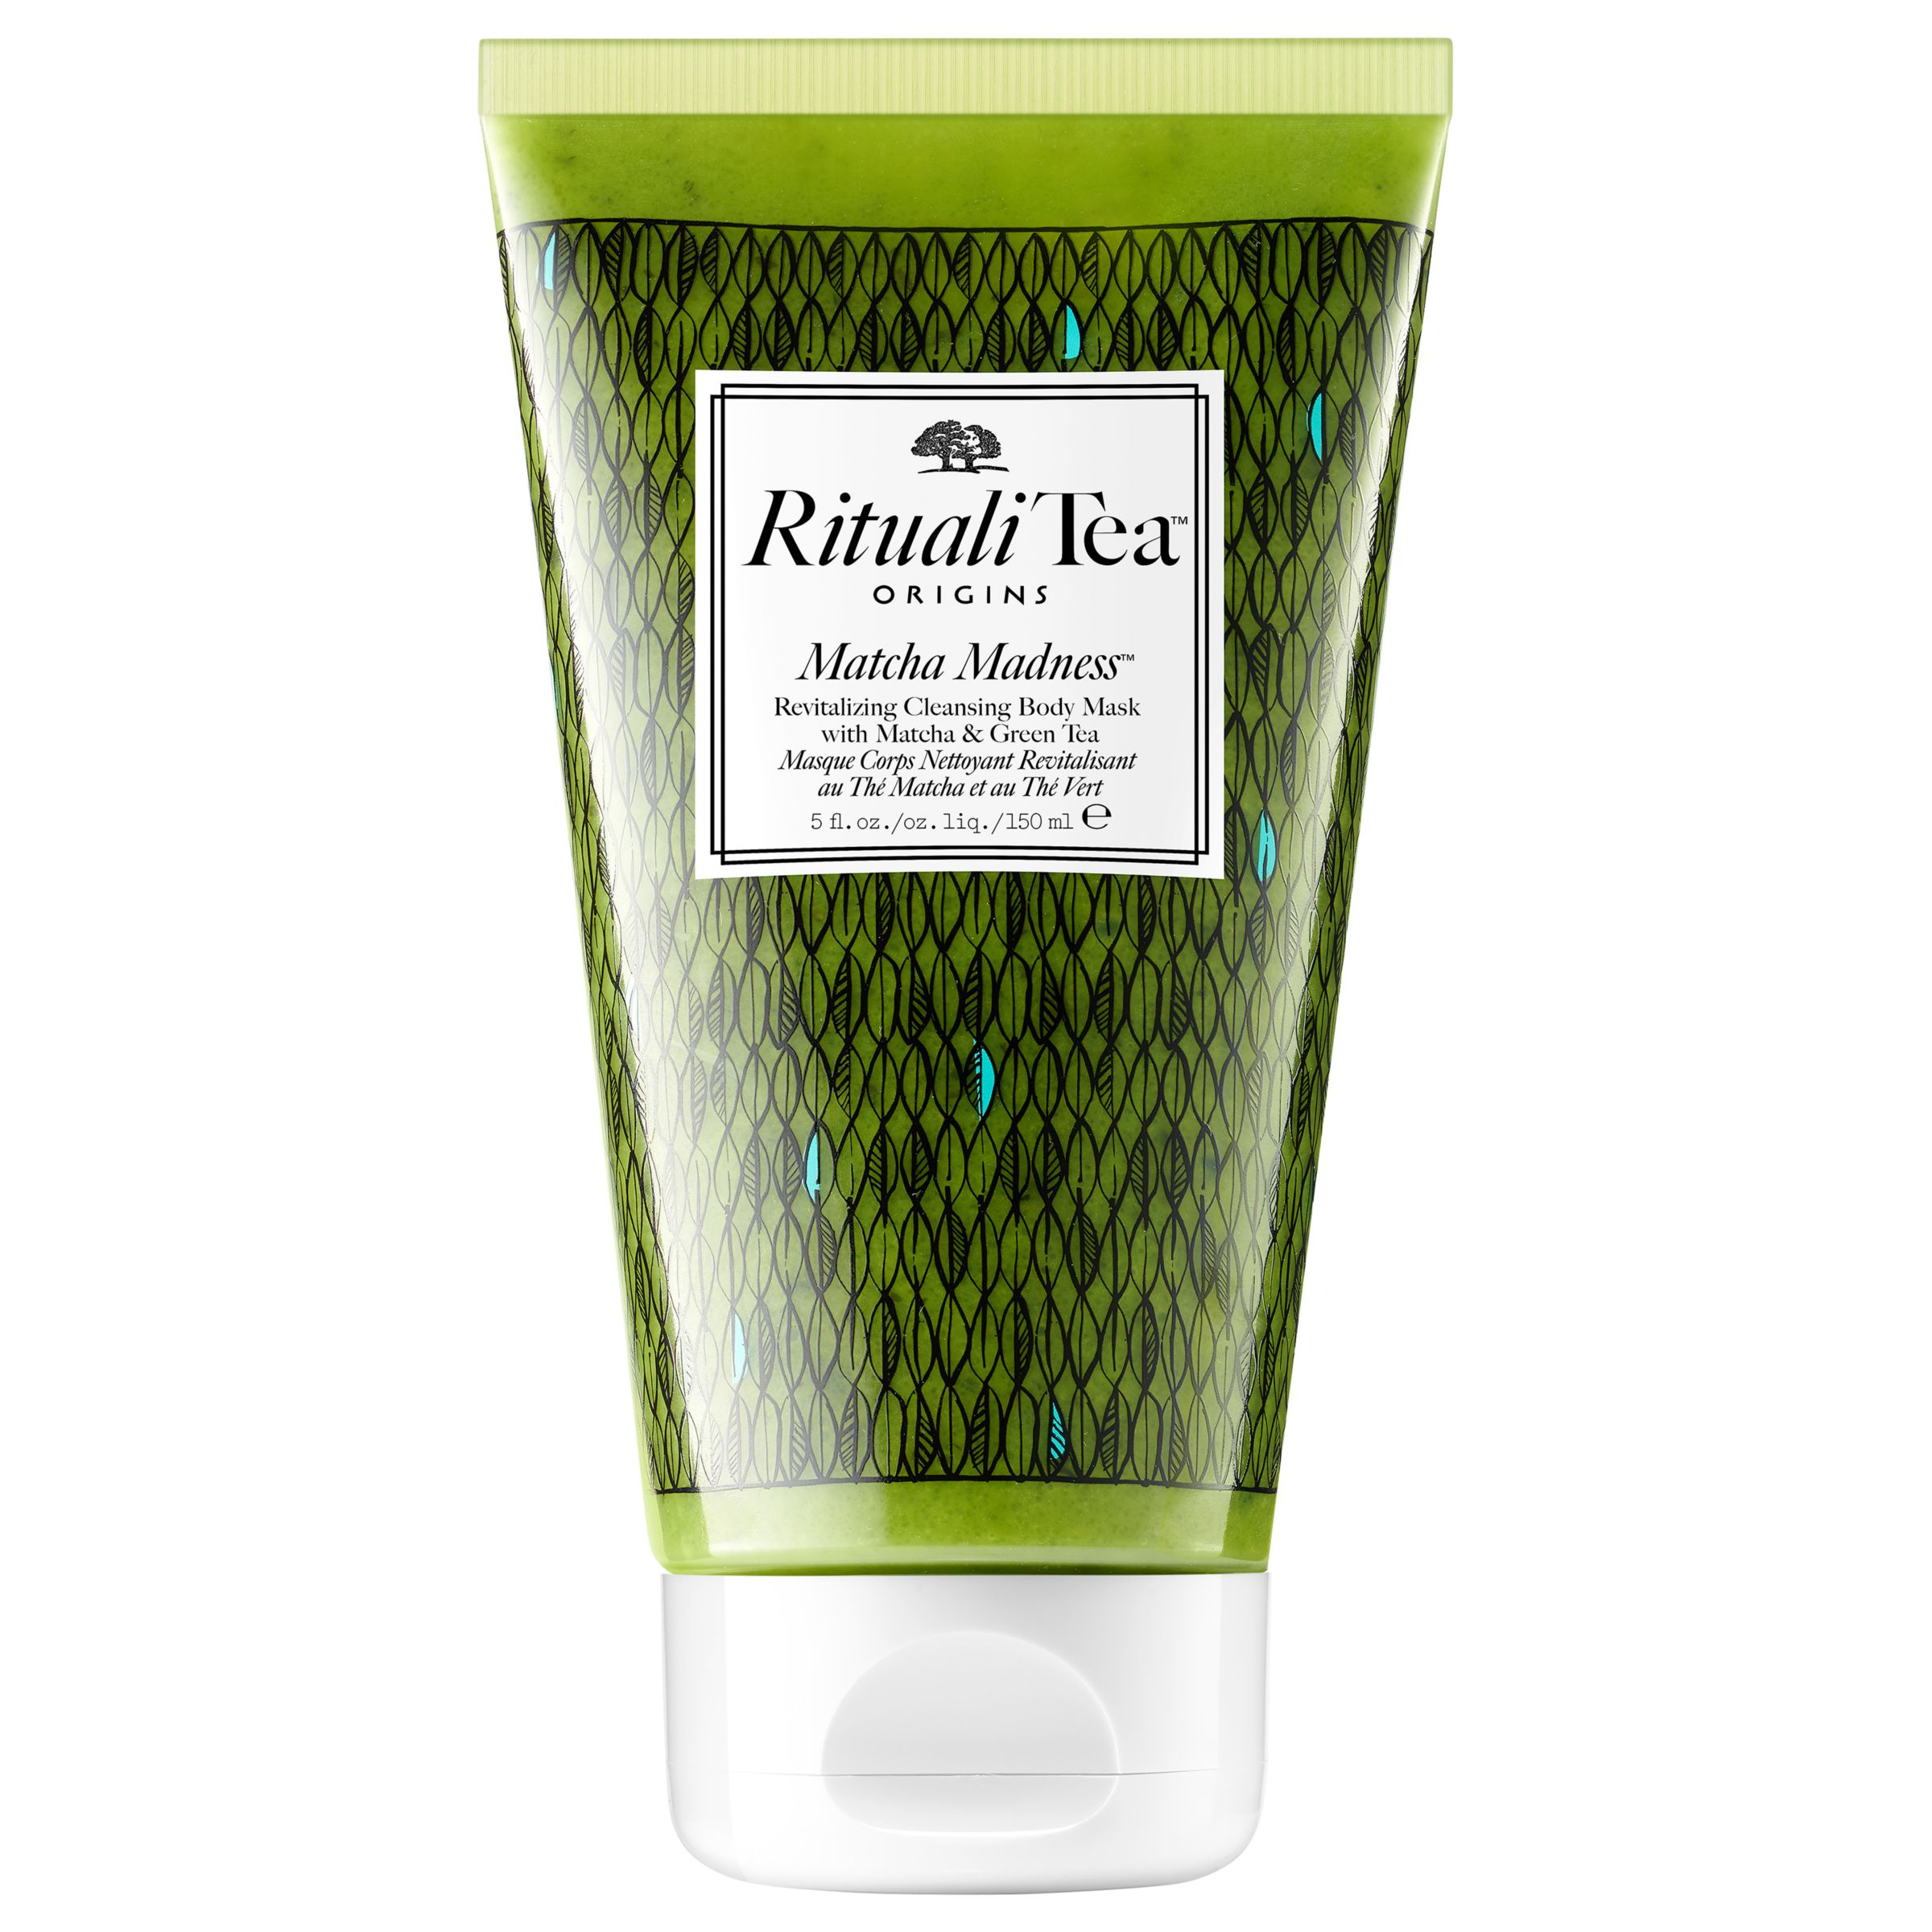 Origins Origins RitualiTea Matcha Madness Body Mask, 150ml